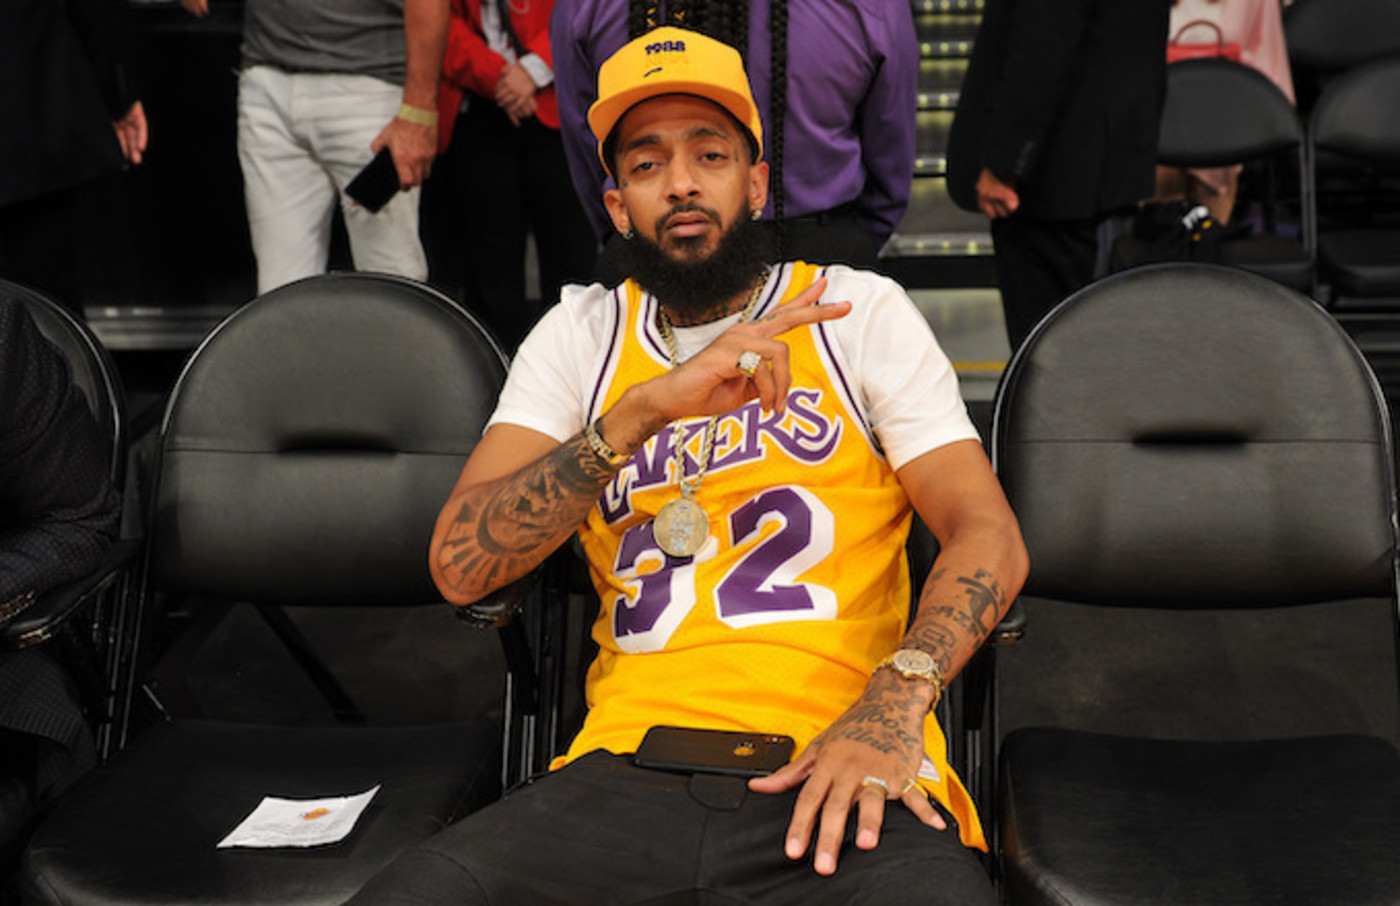 nipsey-hussle-tribute-lakers-game